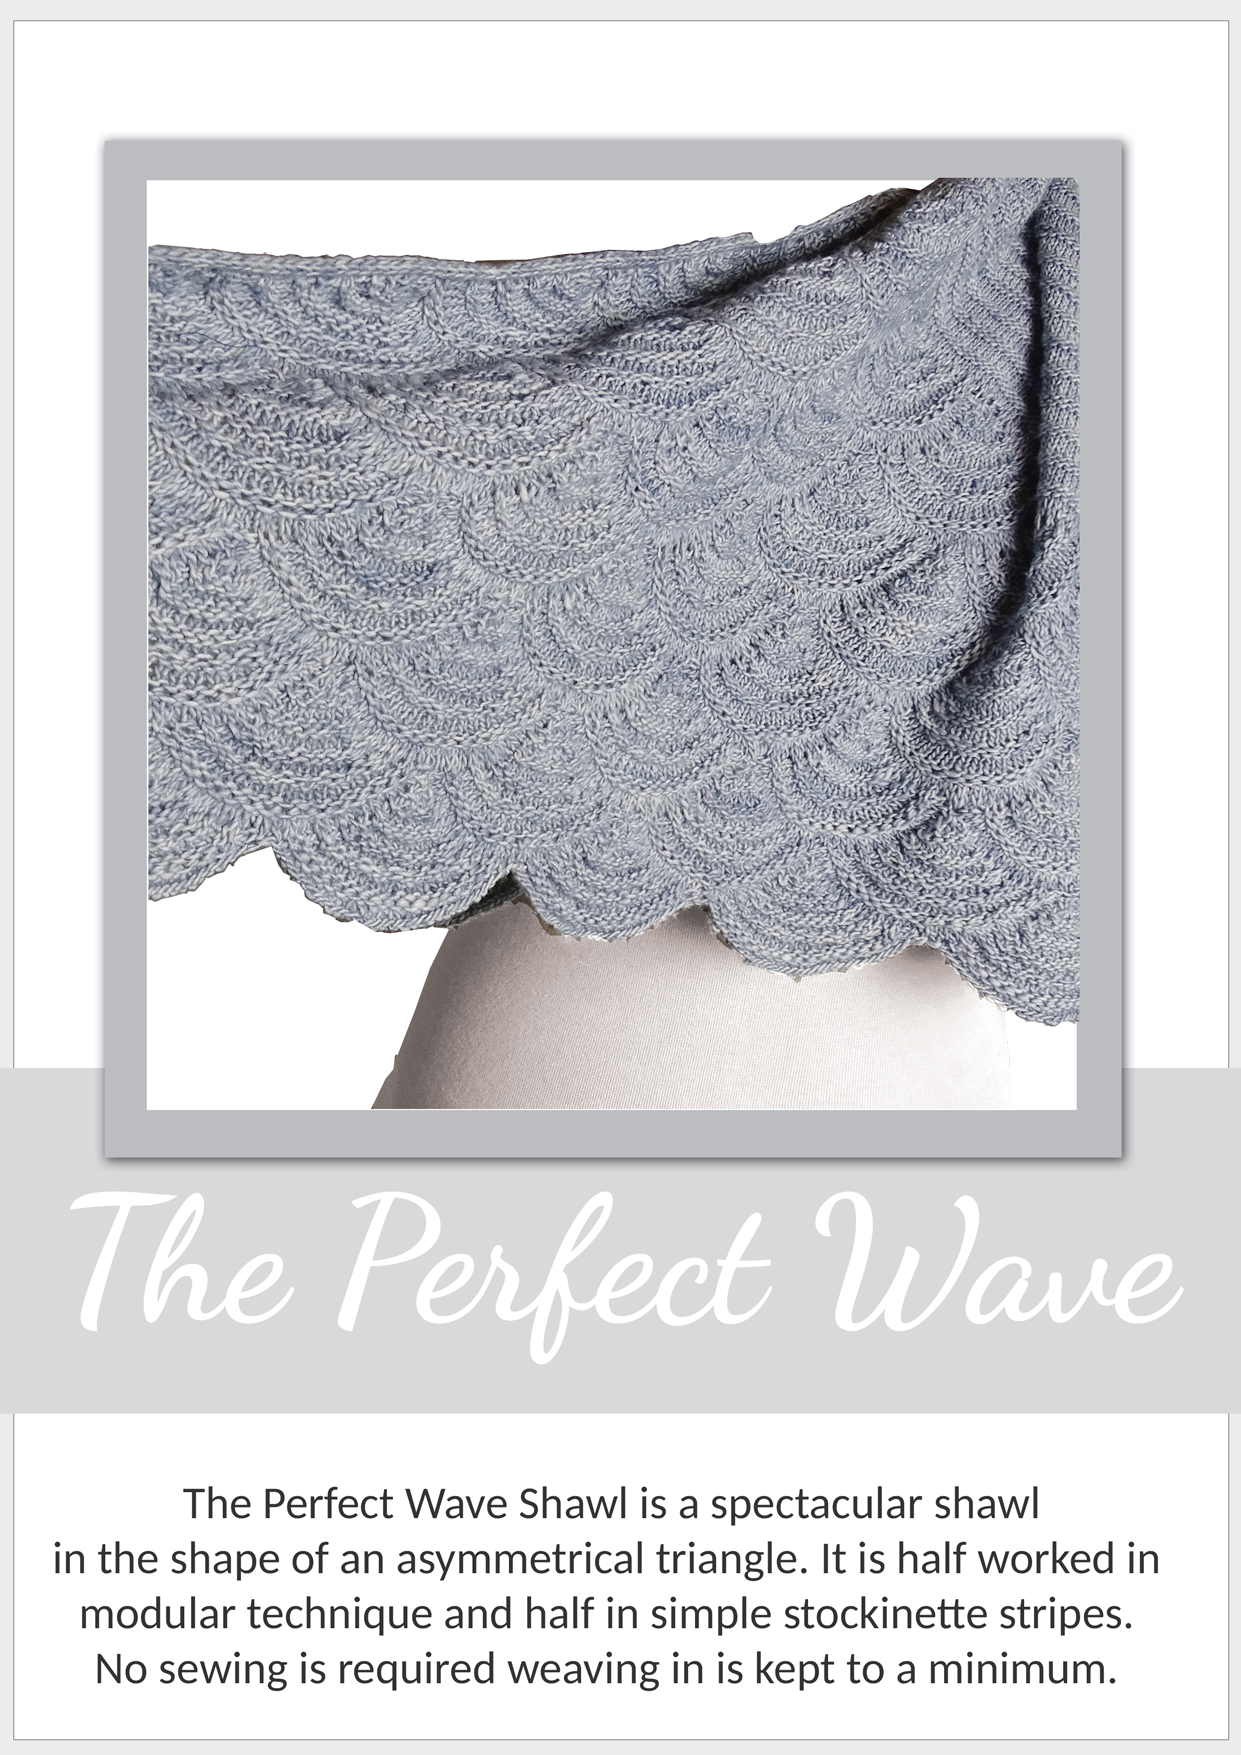 The Perfect Wave Shawl